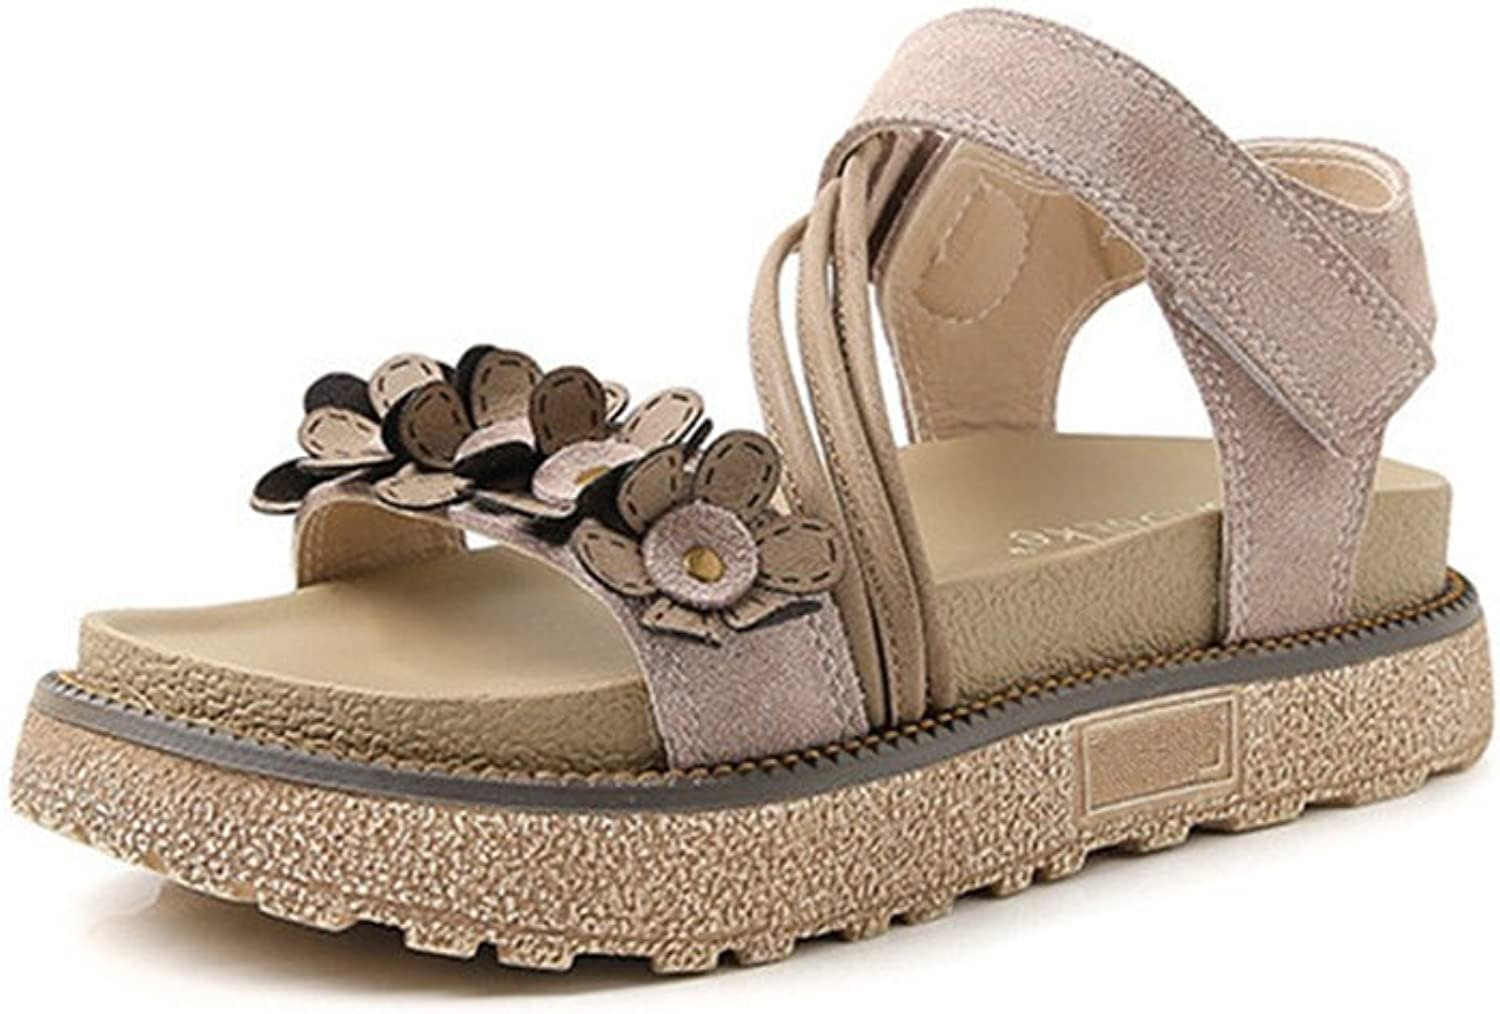 Summer Style Sandals for Women shoes Fashion Platform Sandals Casual Open Toes shoes Slipper